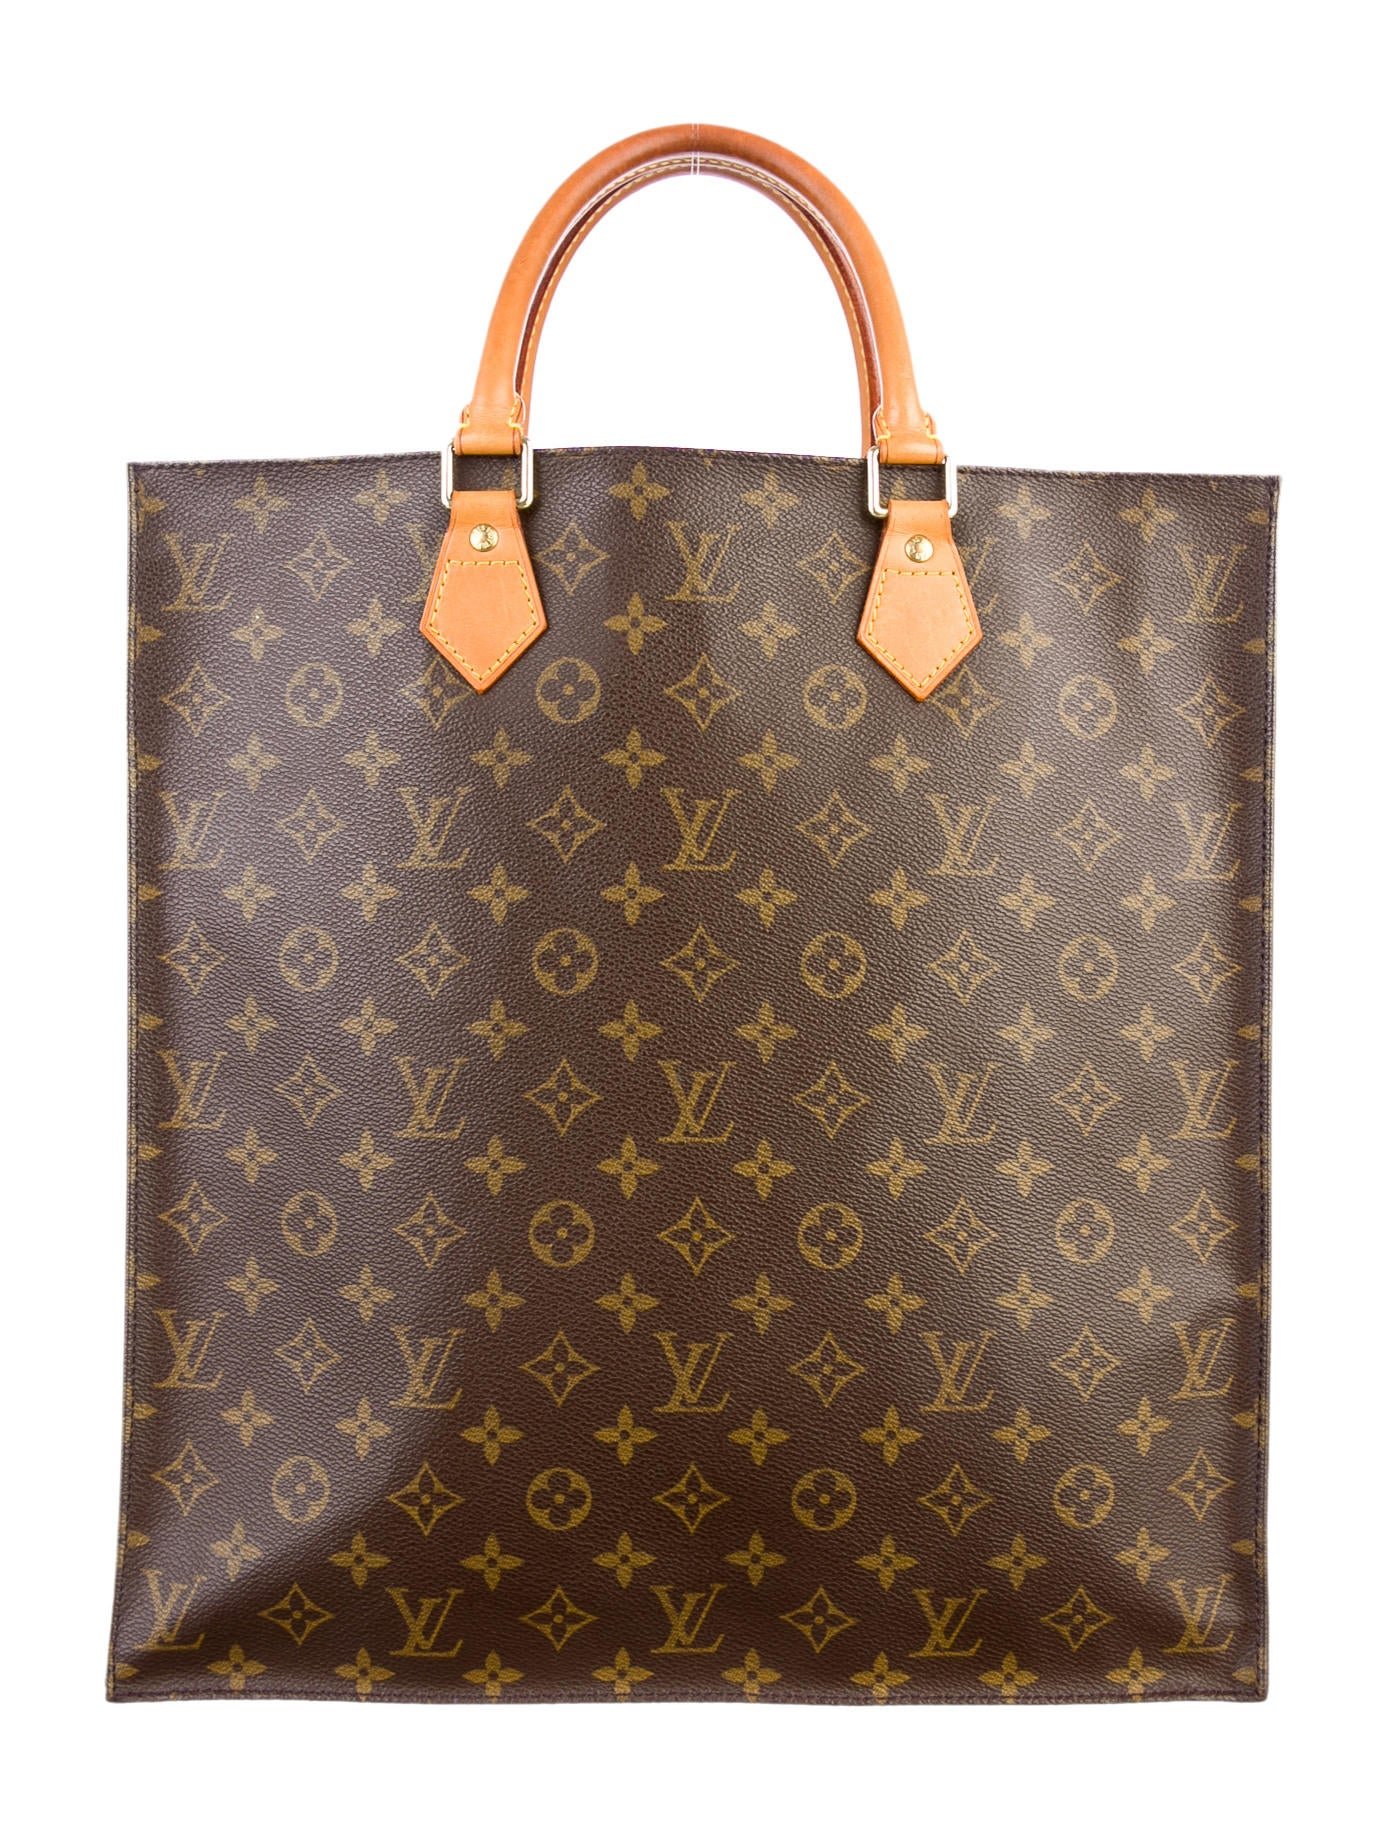 Louis vuitton monogram sac plat tote handbags lou36588 for Louis vuitton monogram miroir sac plat